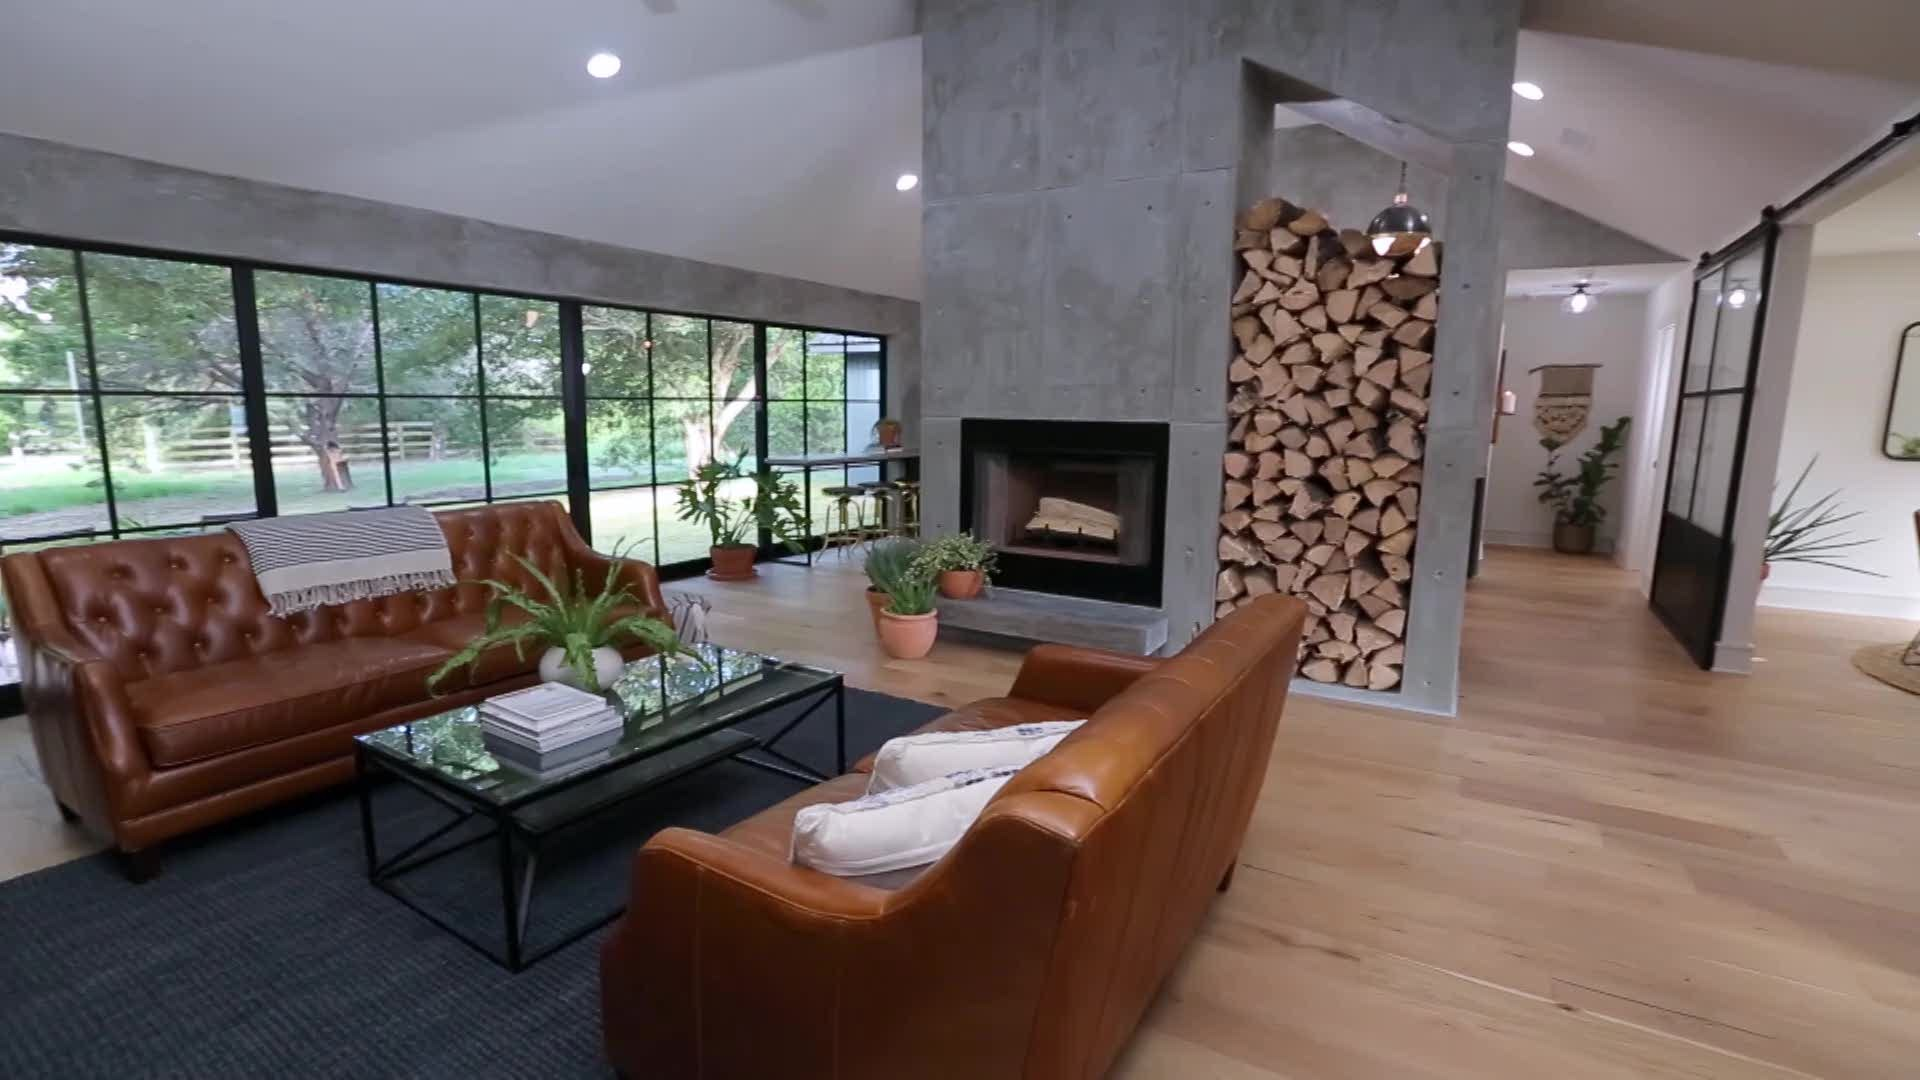 Modern Living Room Ideas for Design and Furniture Layout | HGTV